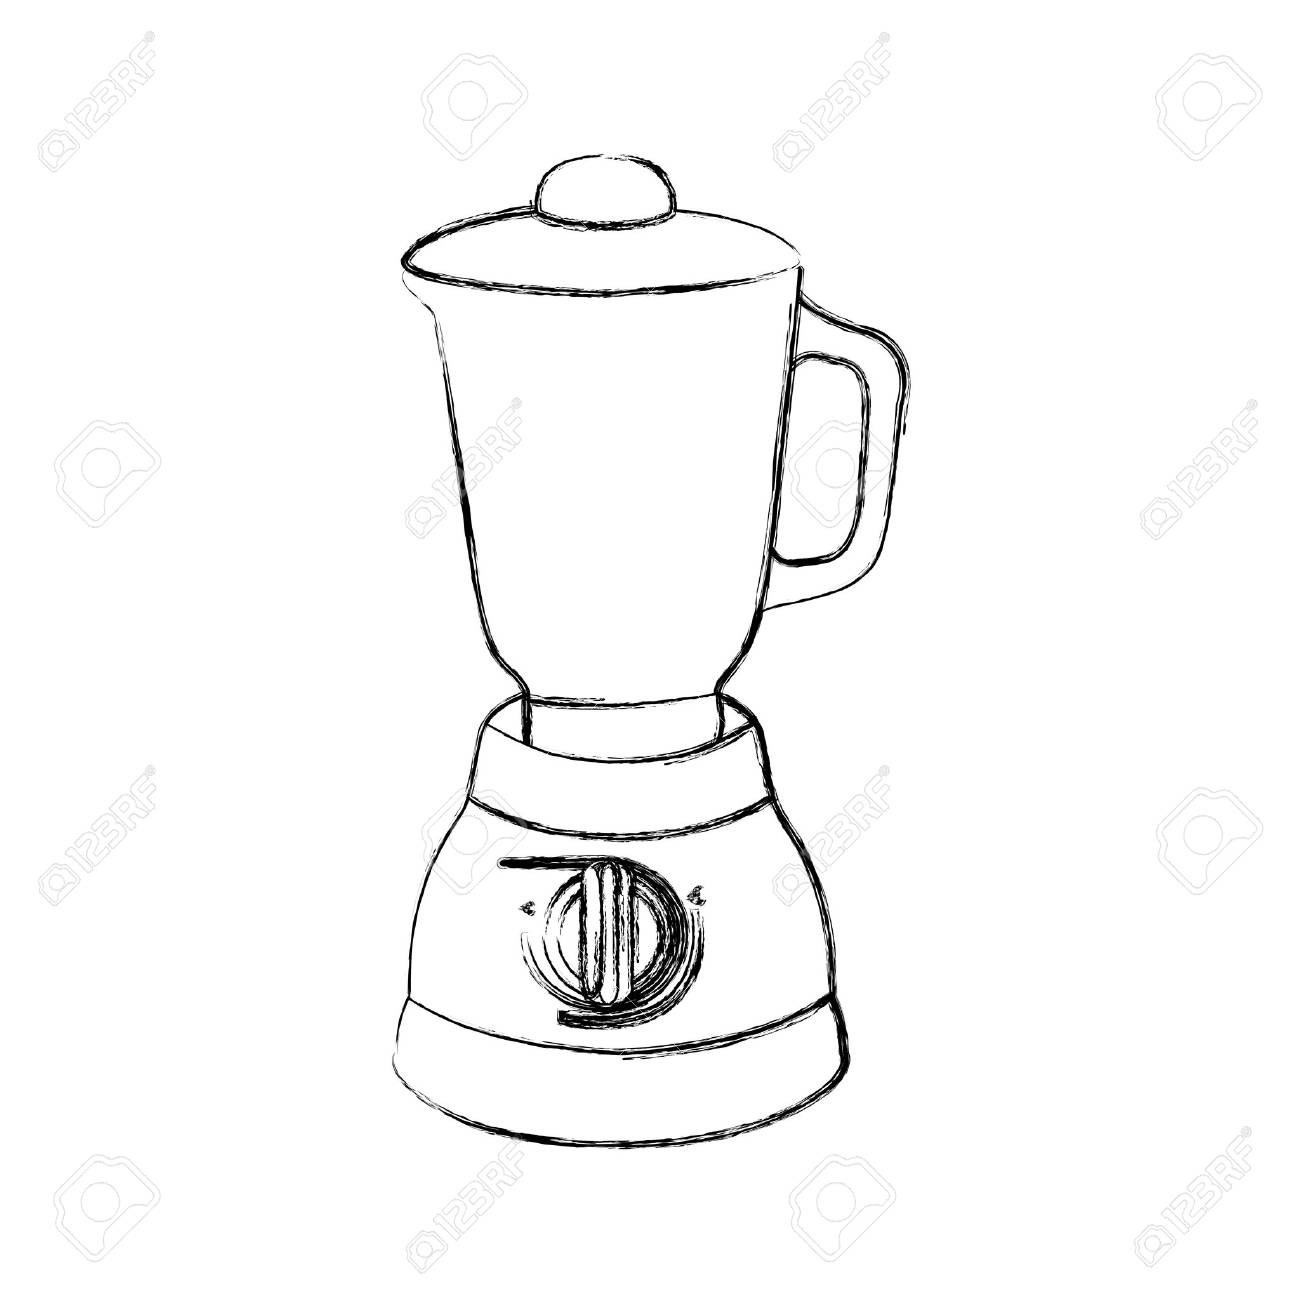 Drawing at getdrawings com. Blender clipart kitchen supply